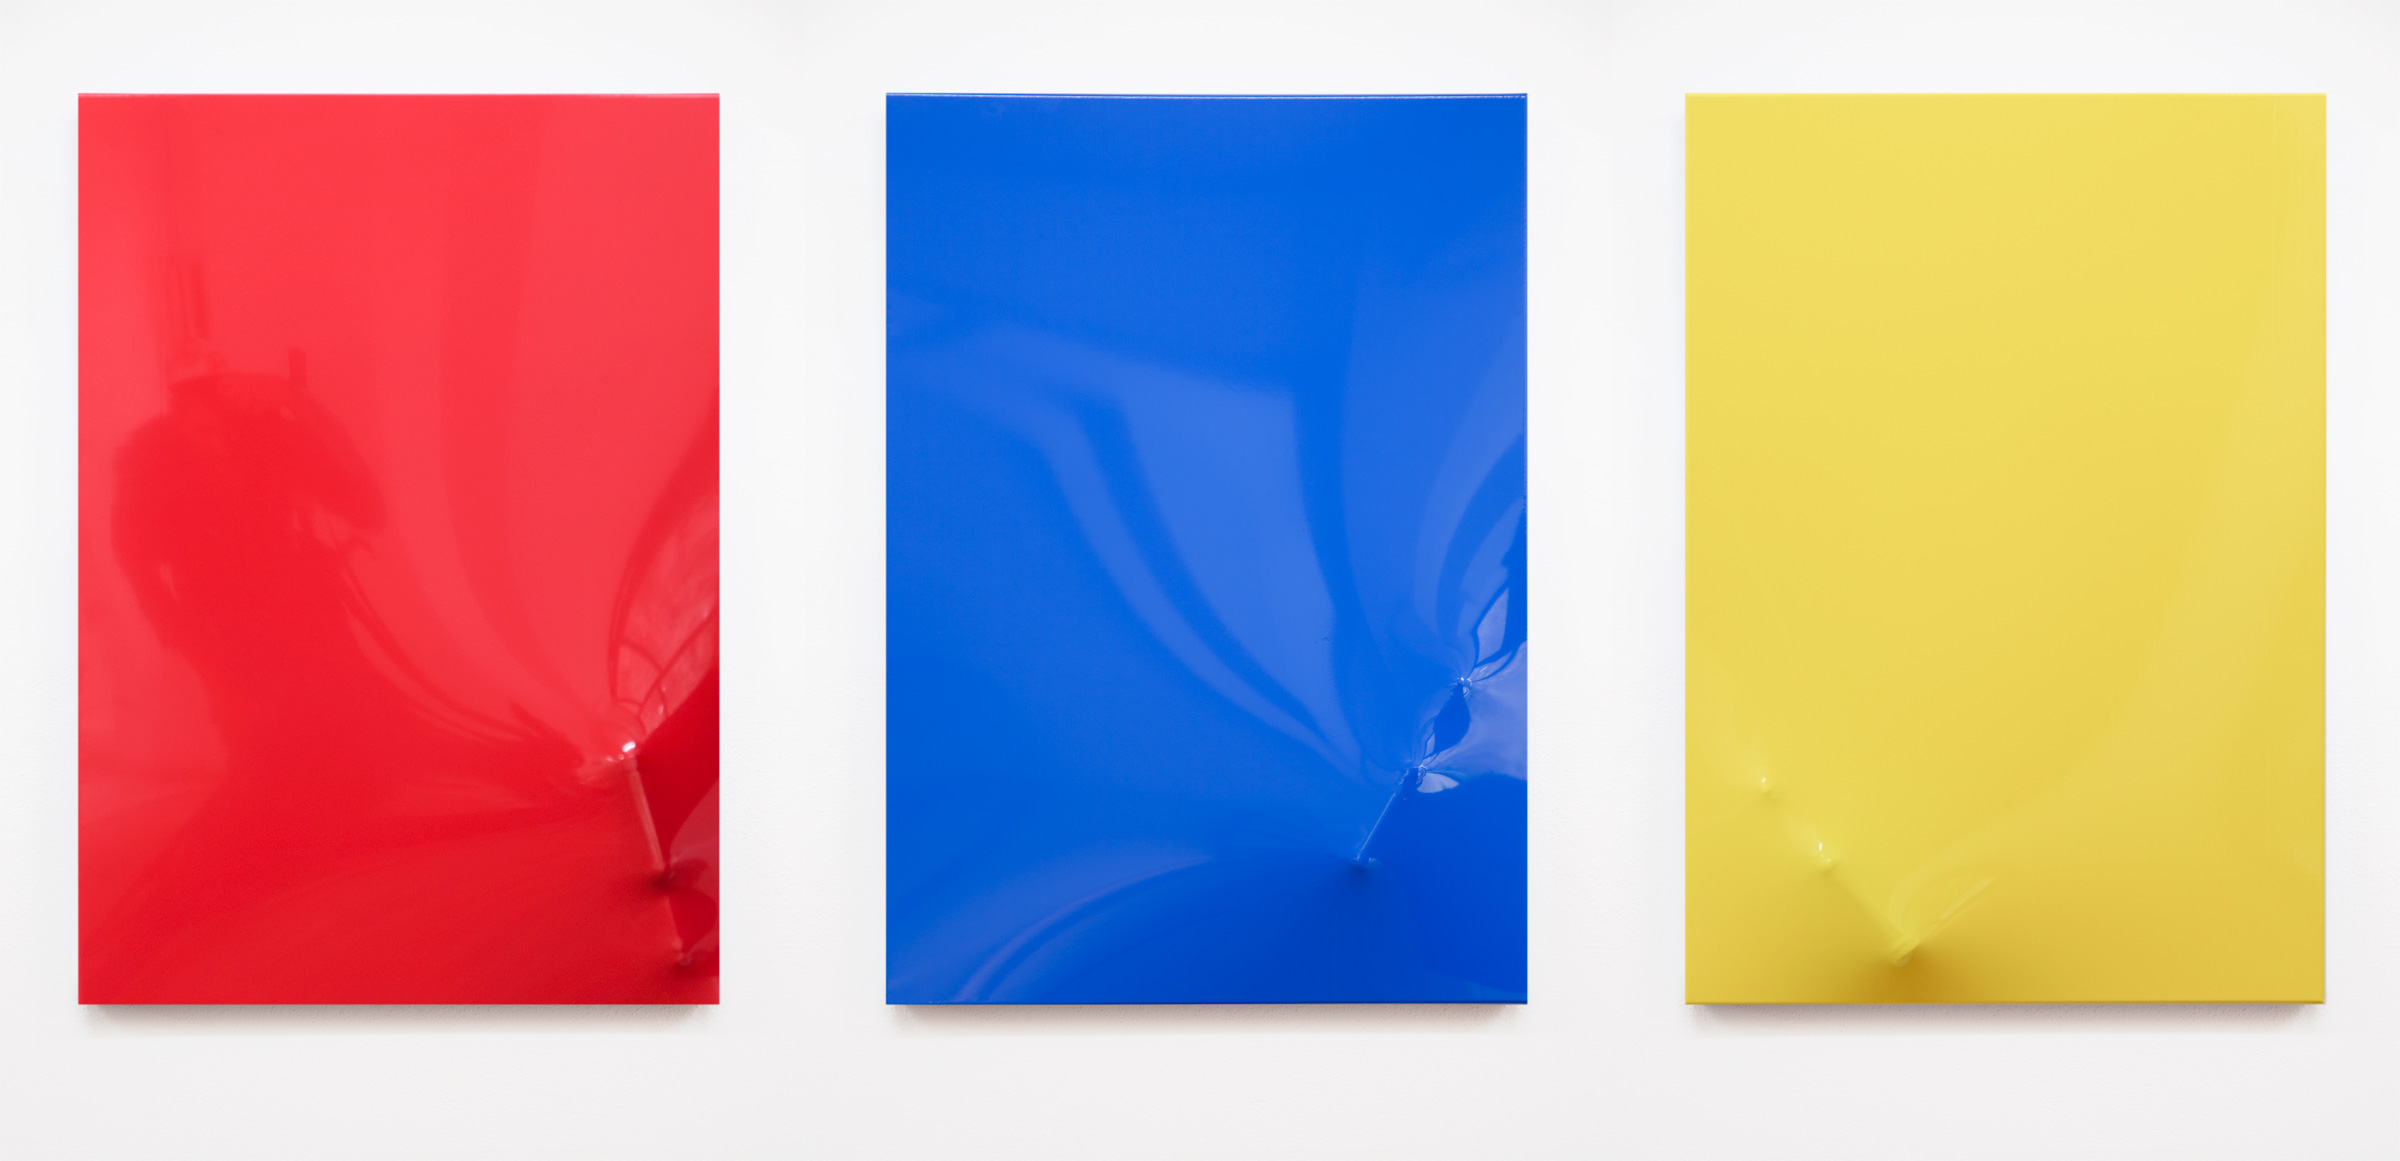 Exile_LISTE20_PatrickPanetta_primarycolors